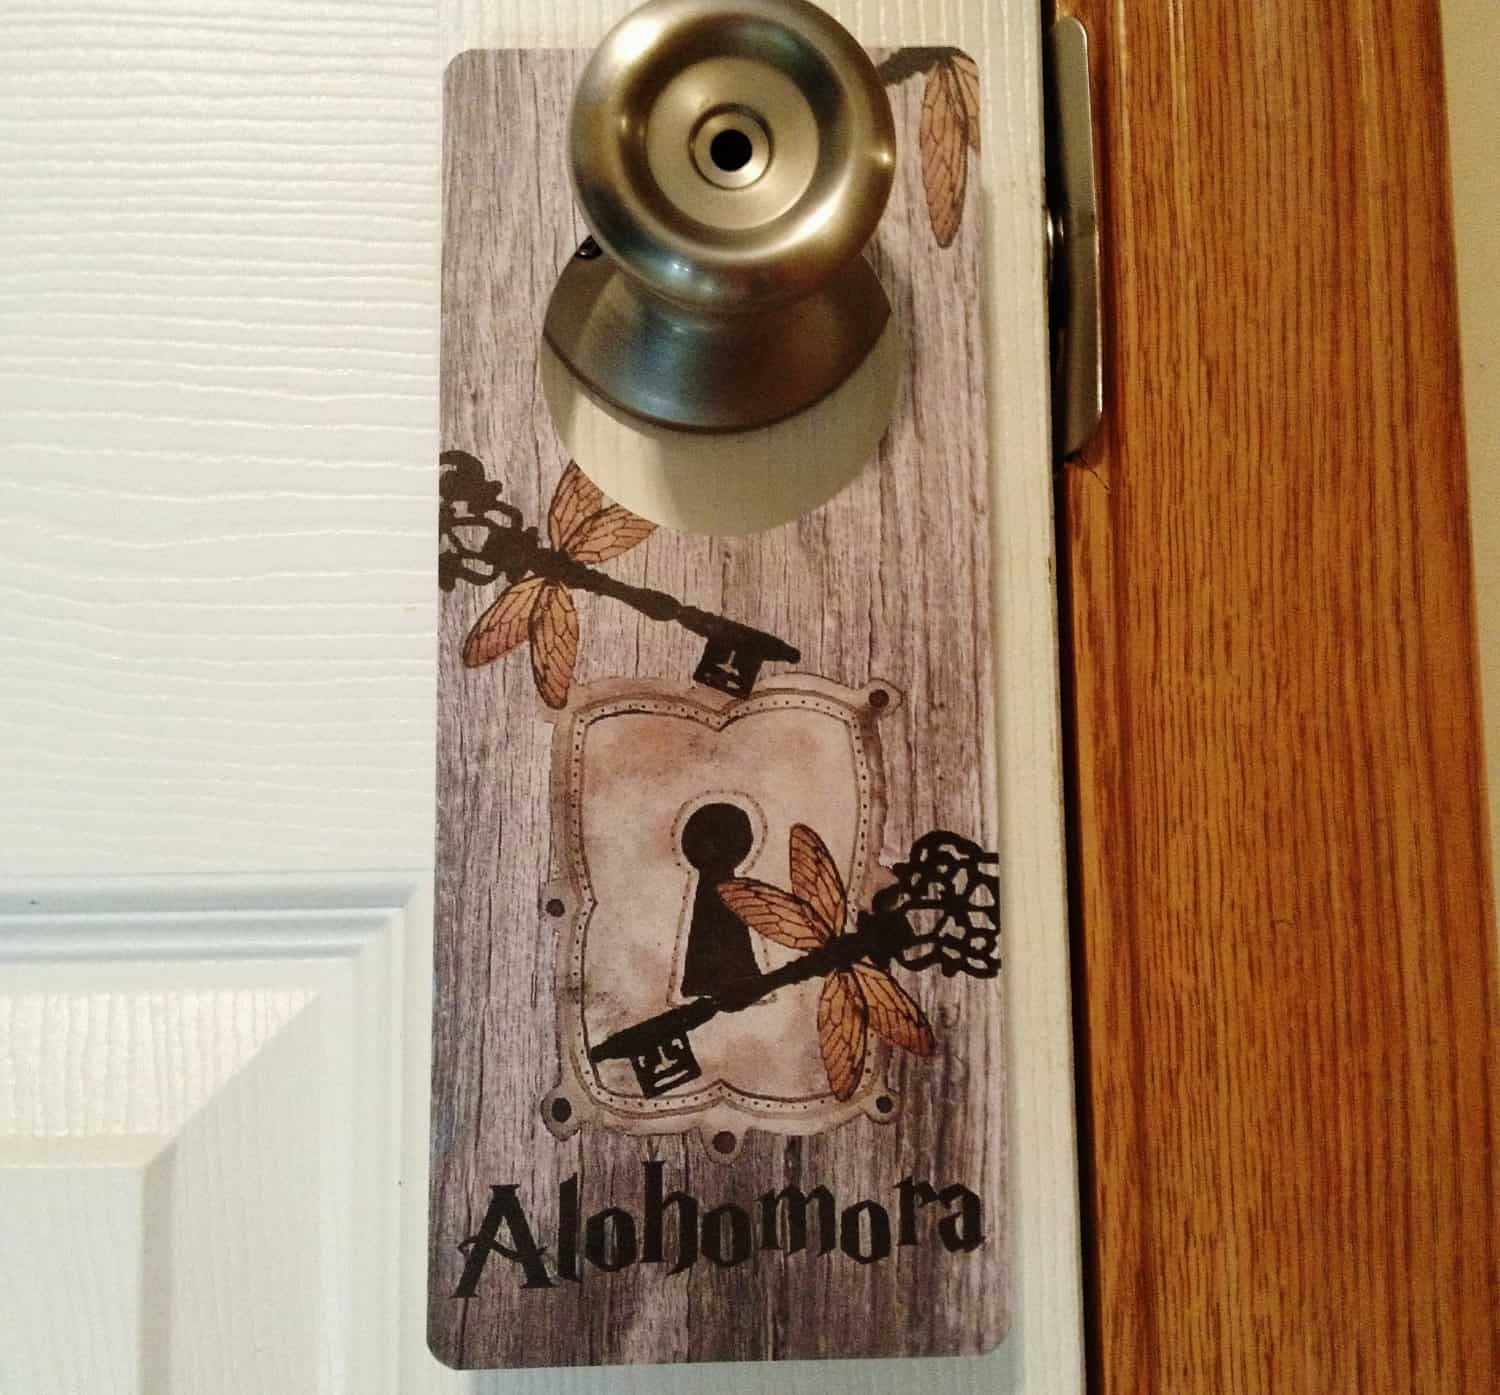 Harry Potter inspired door knob hanger : potter door - pezcame.com